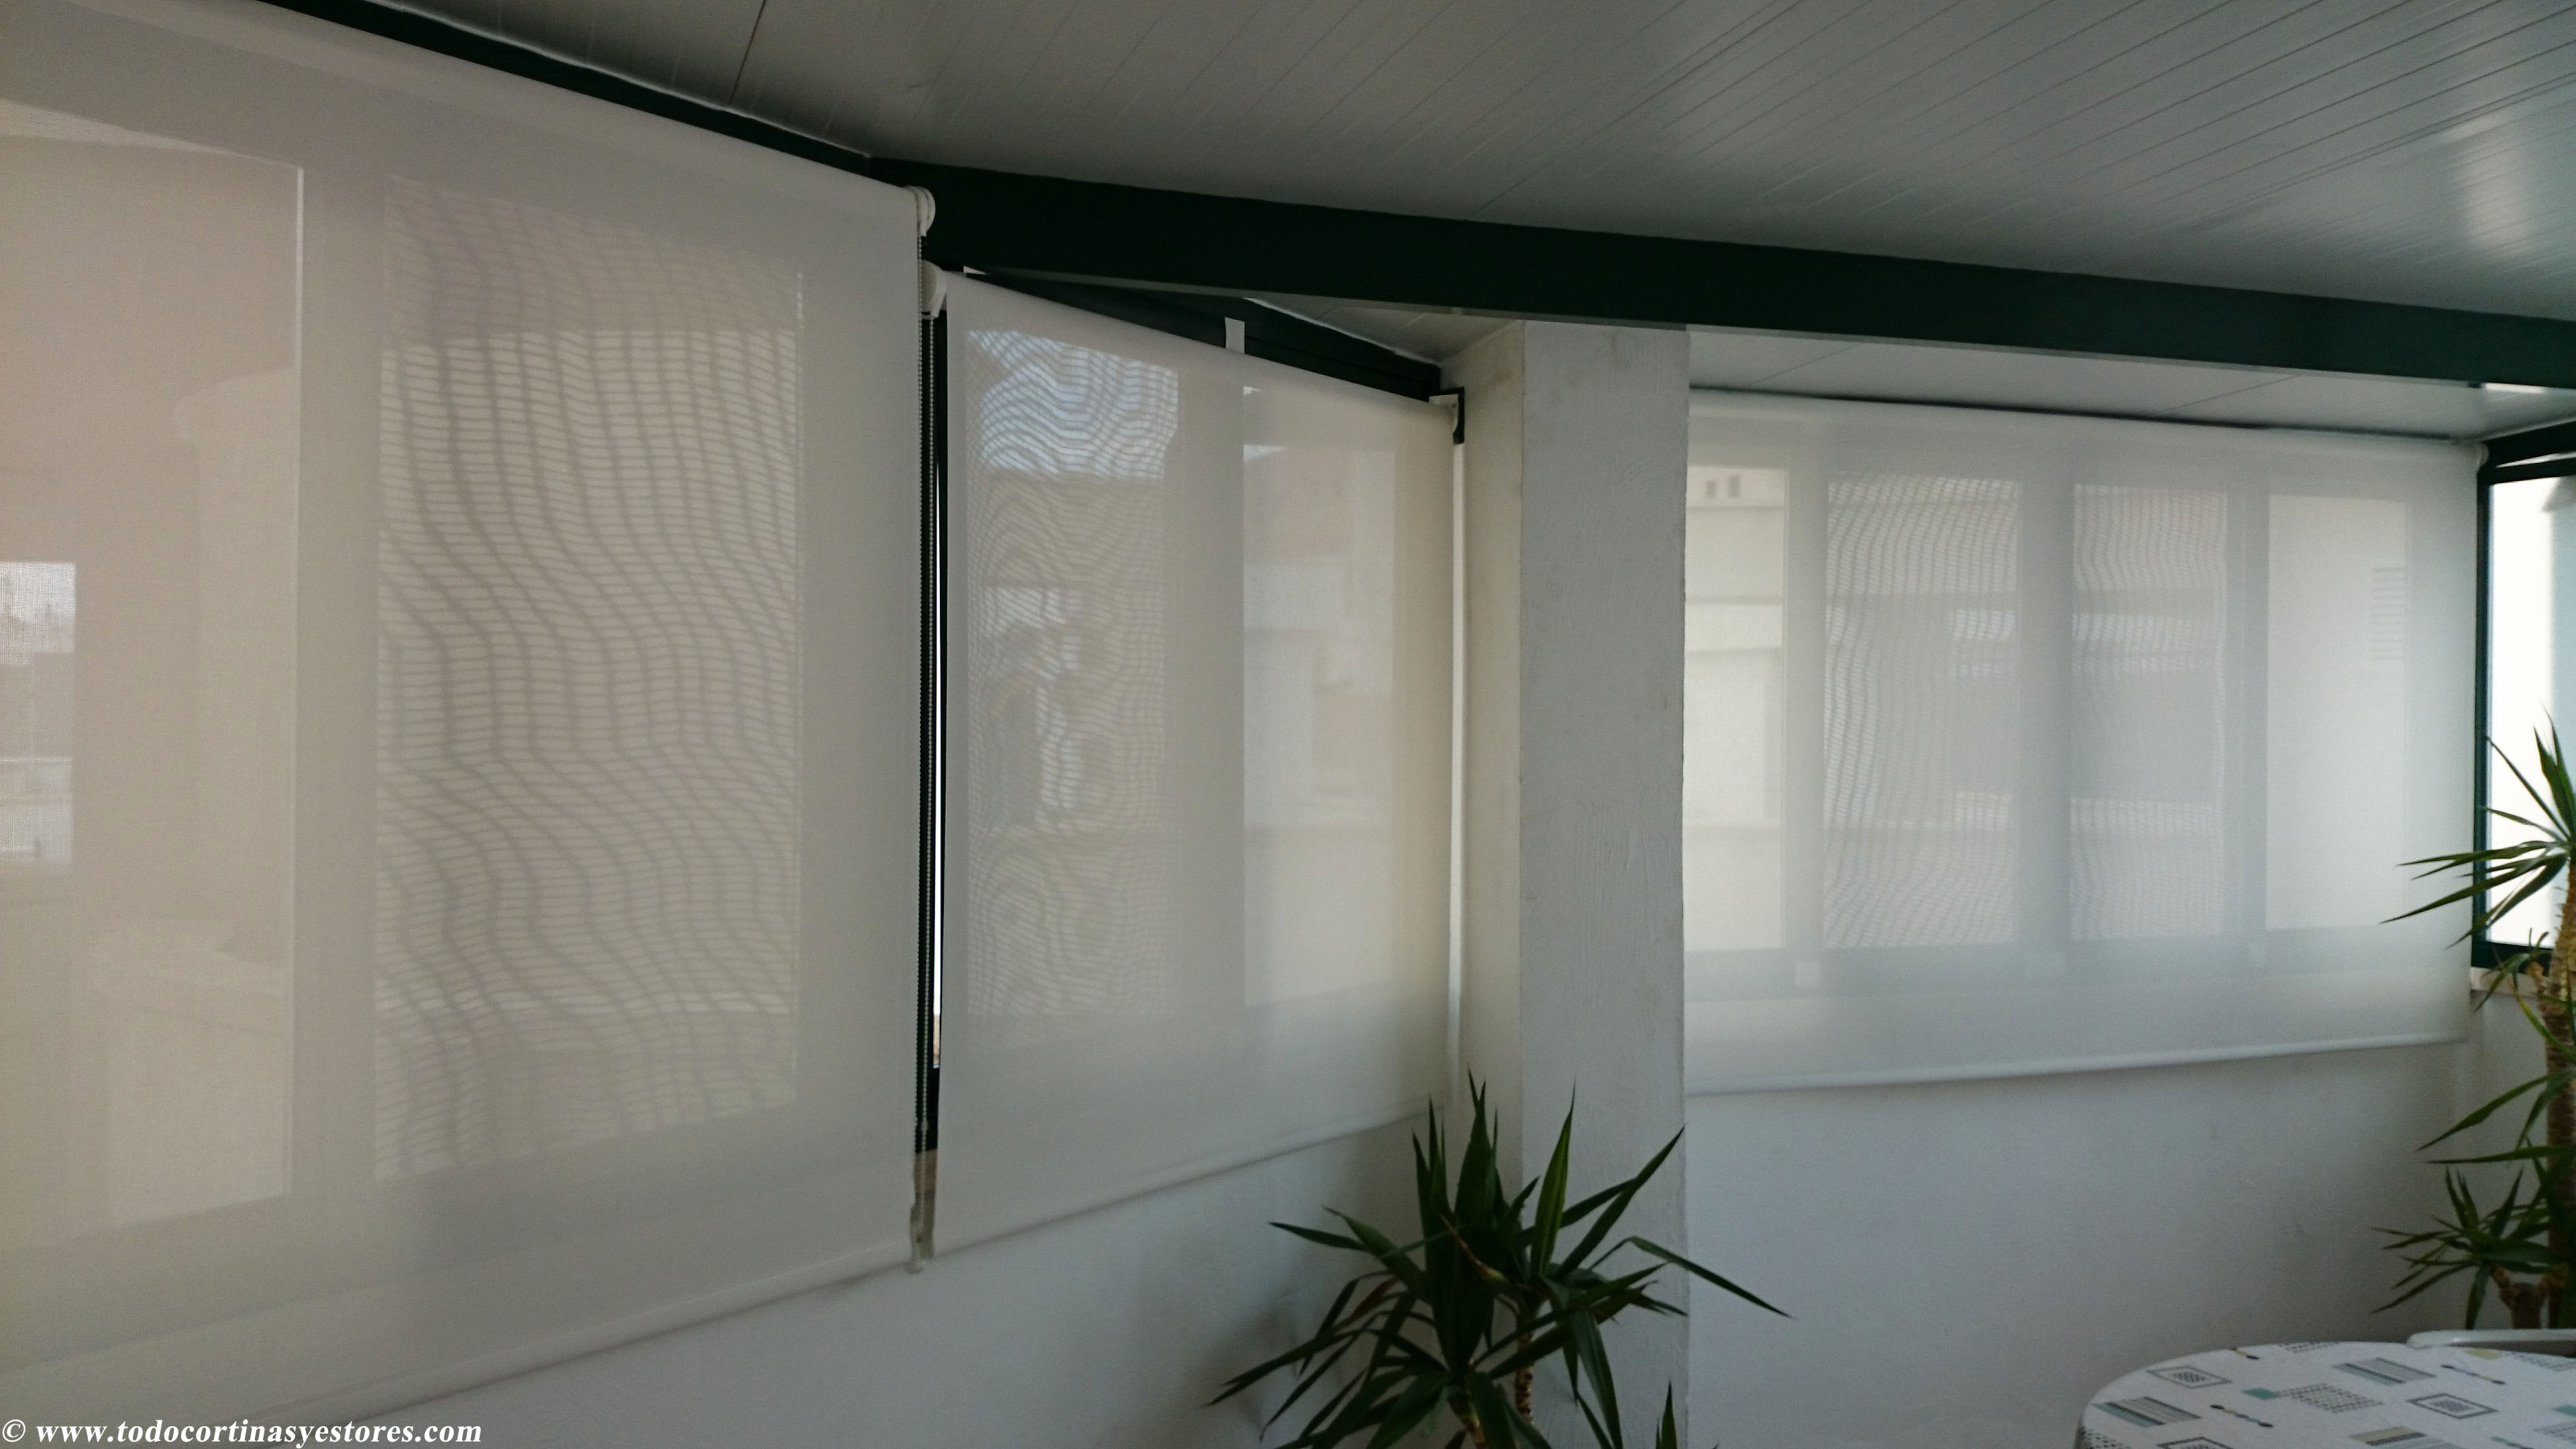 Cortinas Enrollables Ikea Estores Para Techos Desnivelados | El Blog De Decoración